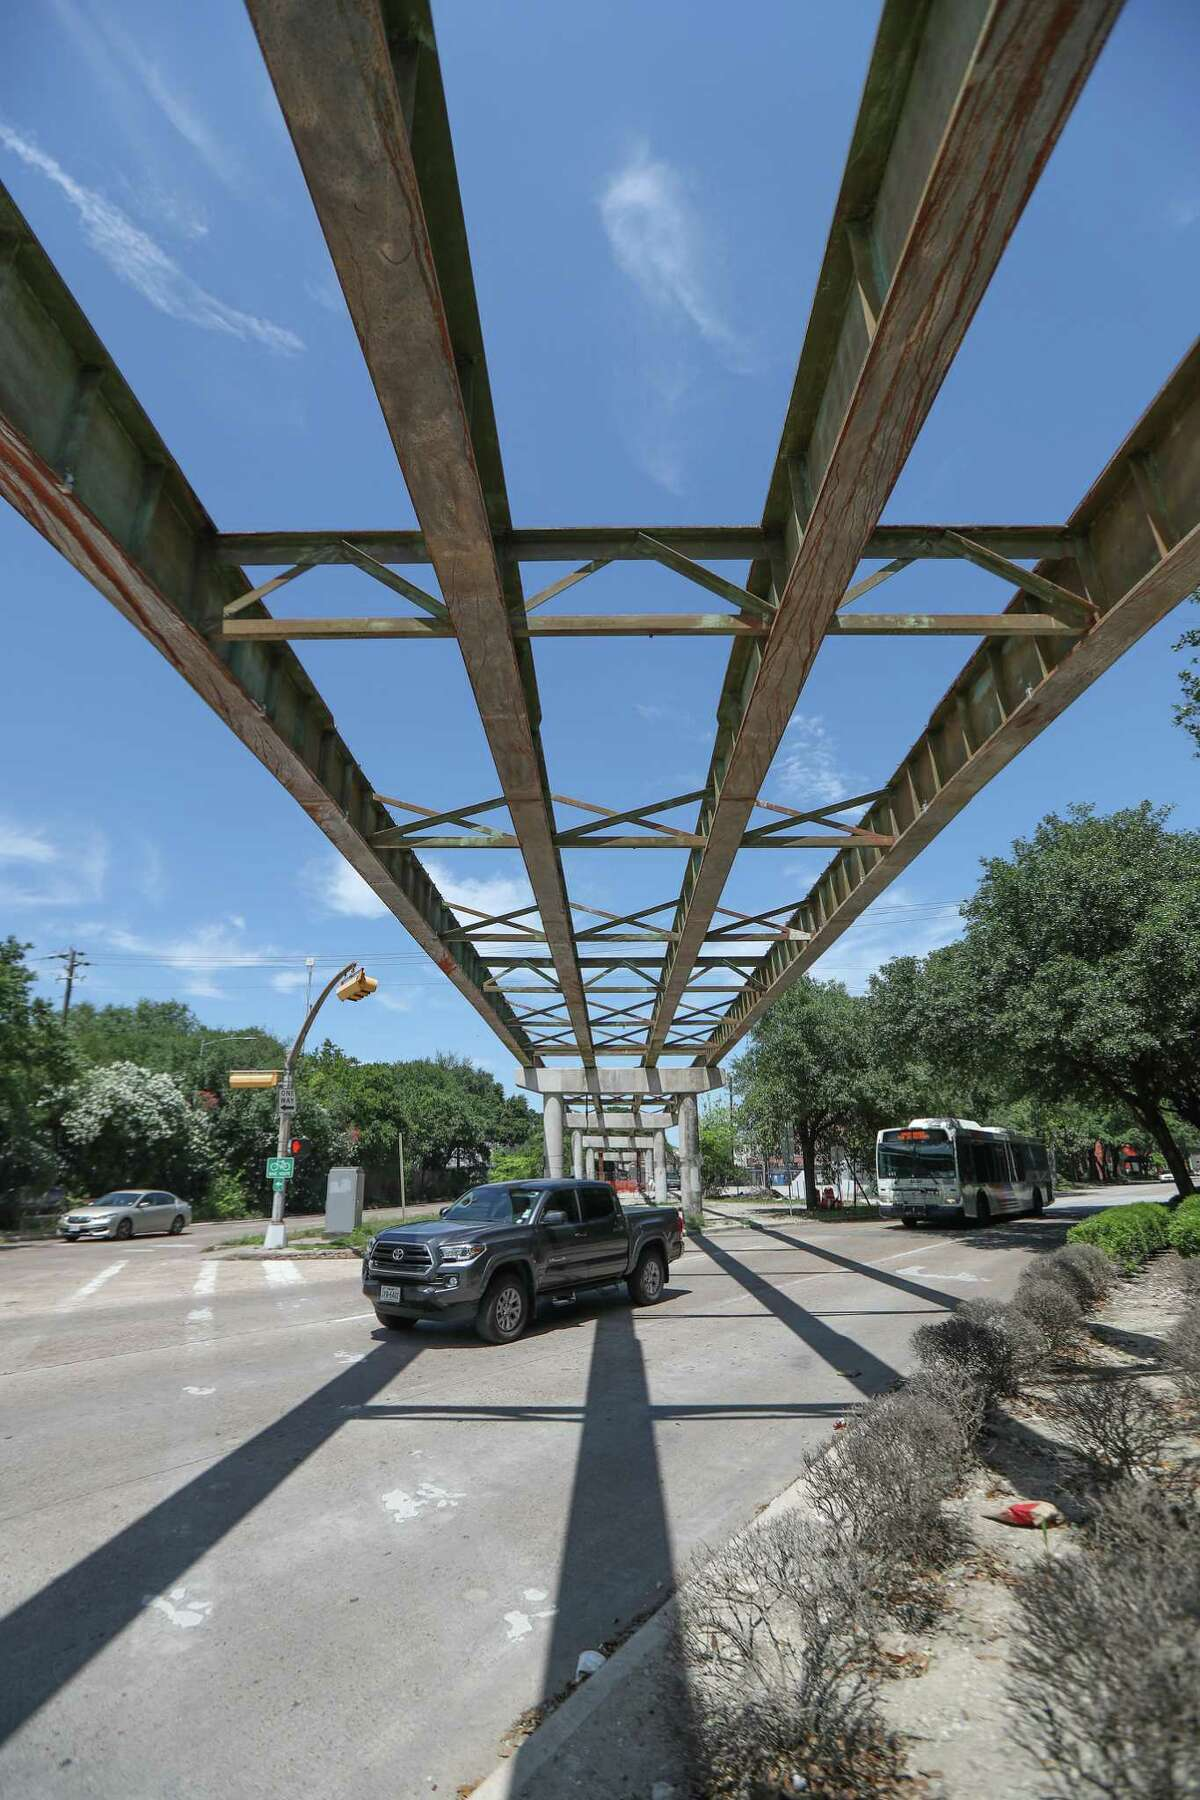 City officials planned a pedestrian trail as a replacement for connections from Bagby and Brazos to Spur 527, rather than replace the old bridge, the girders of which hang above the streets on April 15, 2020, in Midtown Houston.